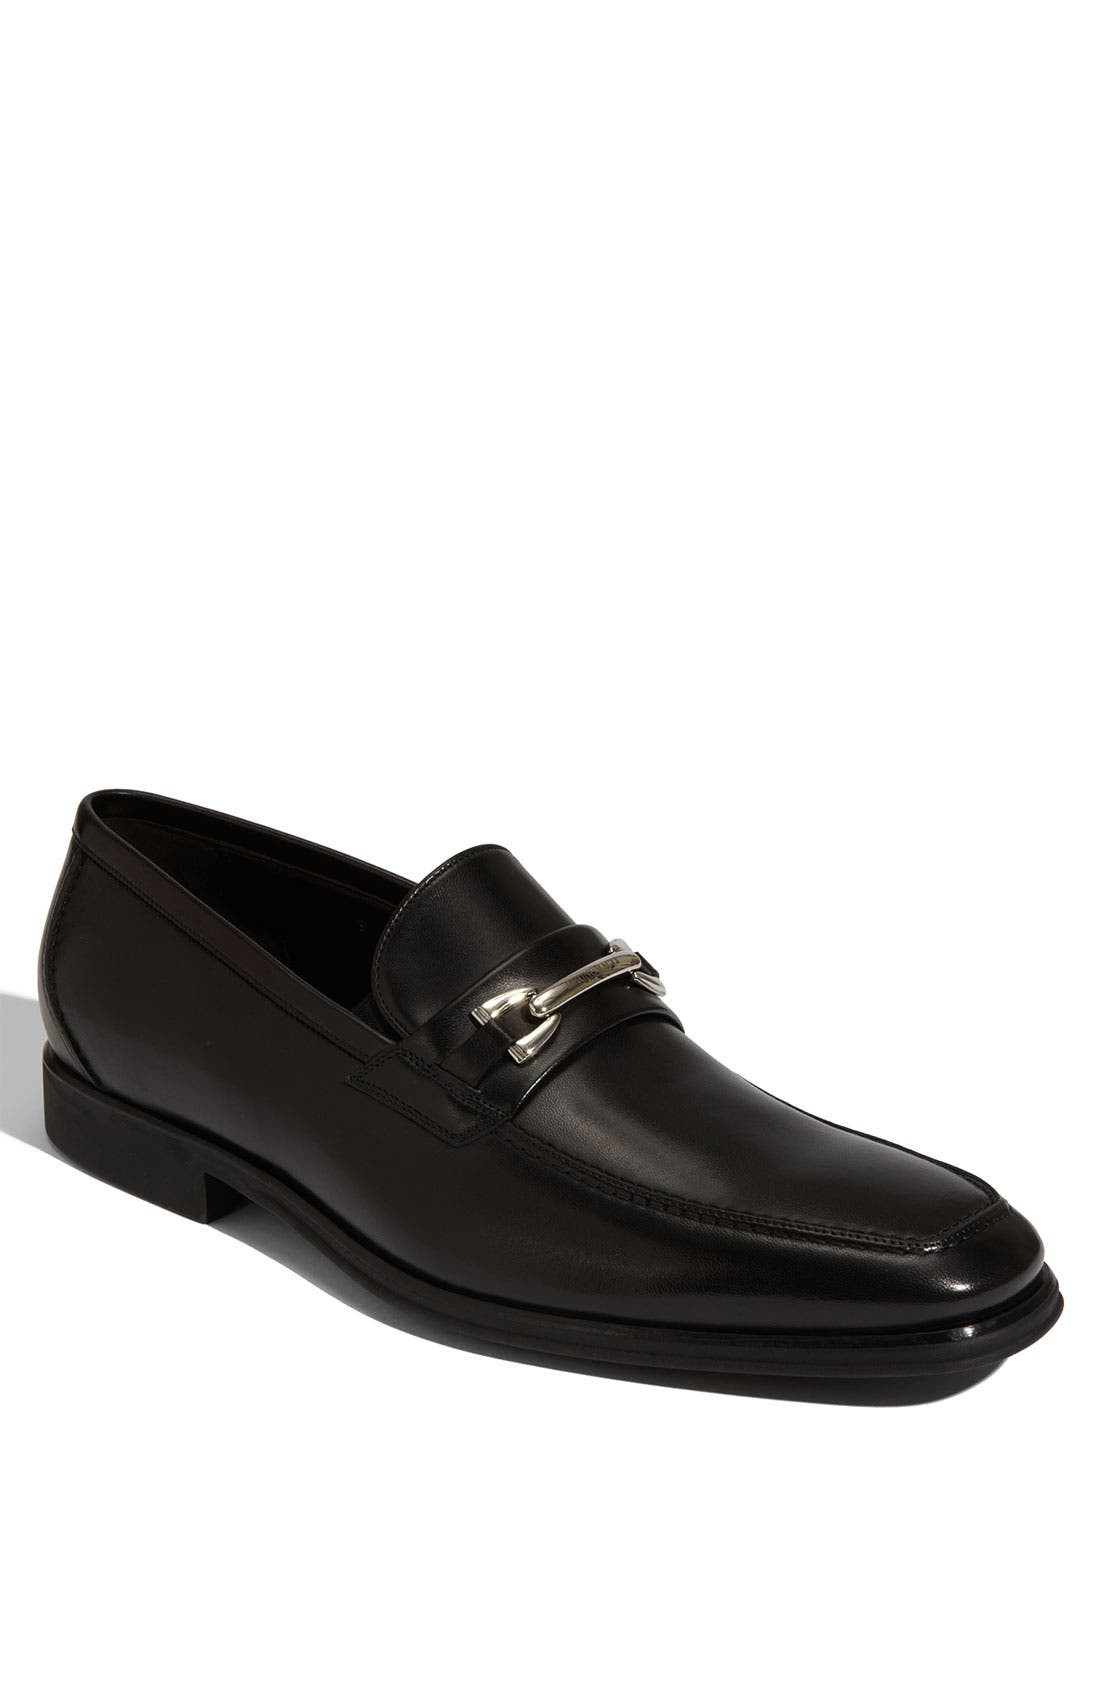 Main Image - Bruno Magli 'Renegade' Loafer (Men)